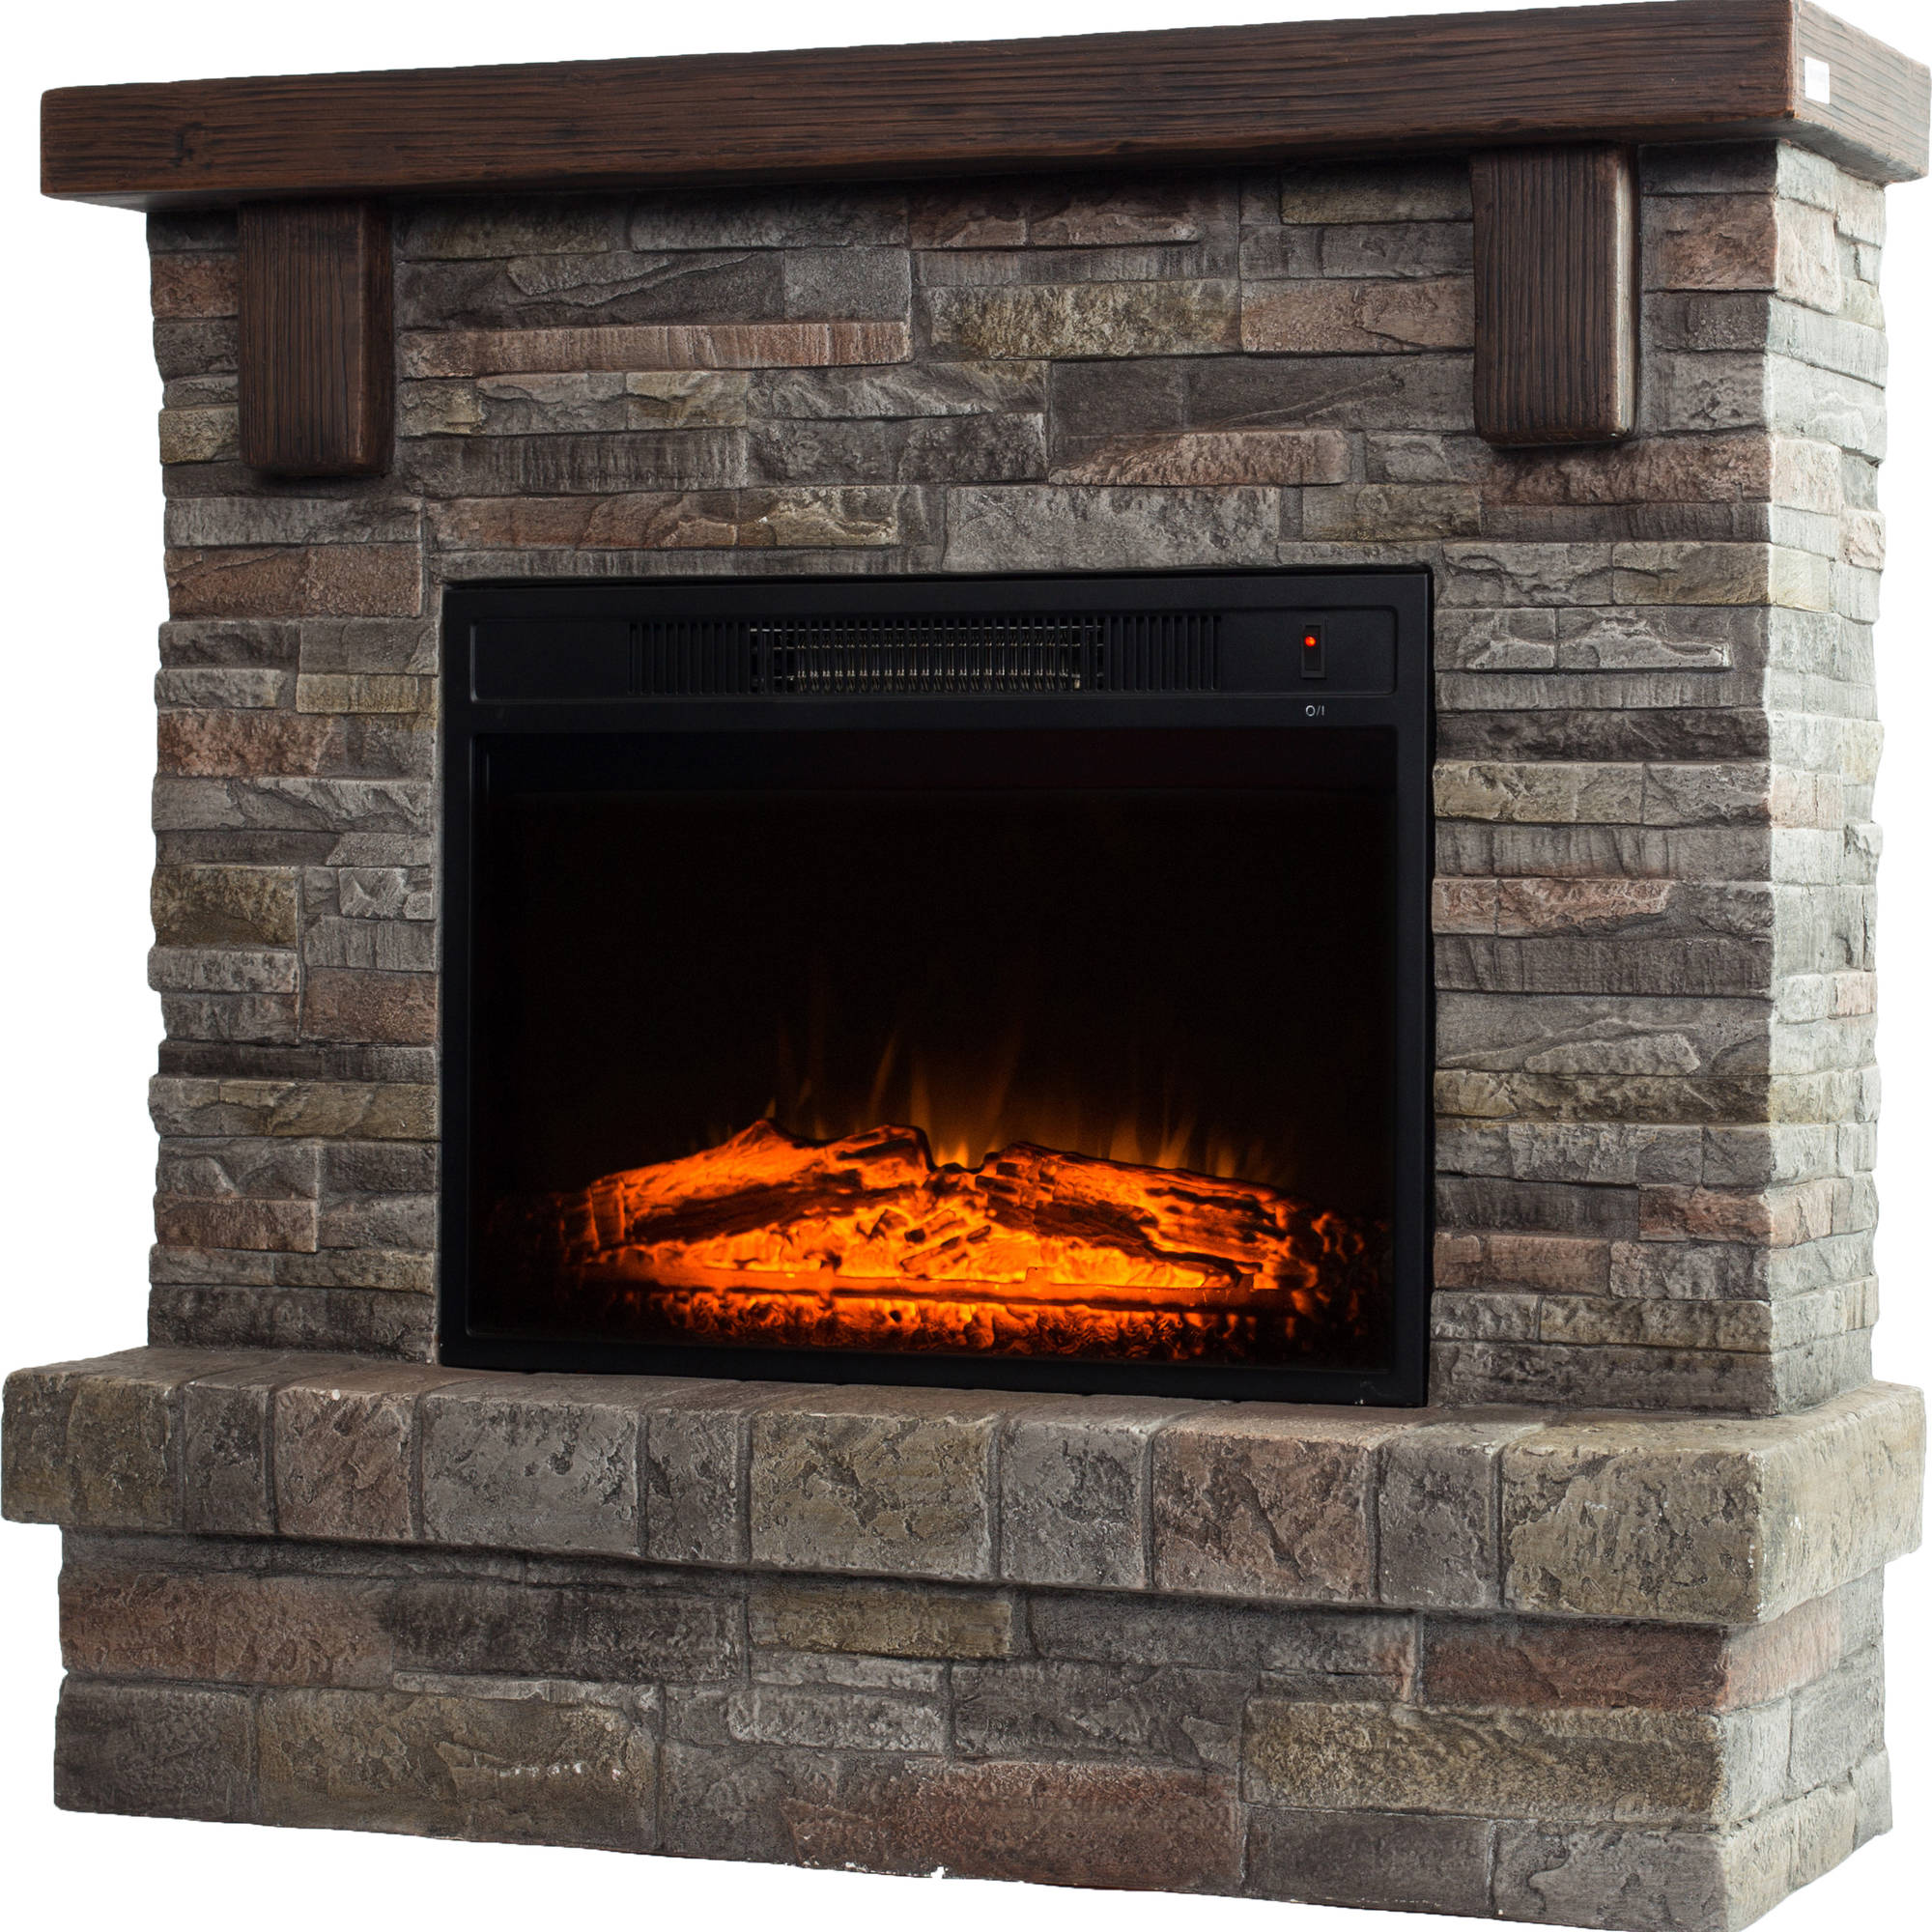 "Buy Decor-Flame Electric Fireplace with 41"" Mantle at Walmart.com"